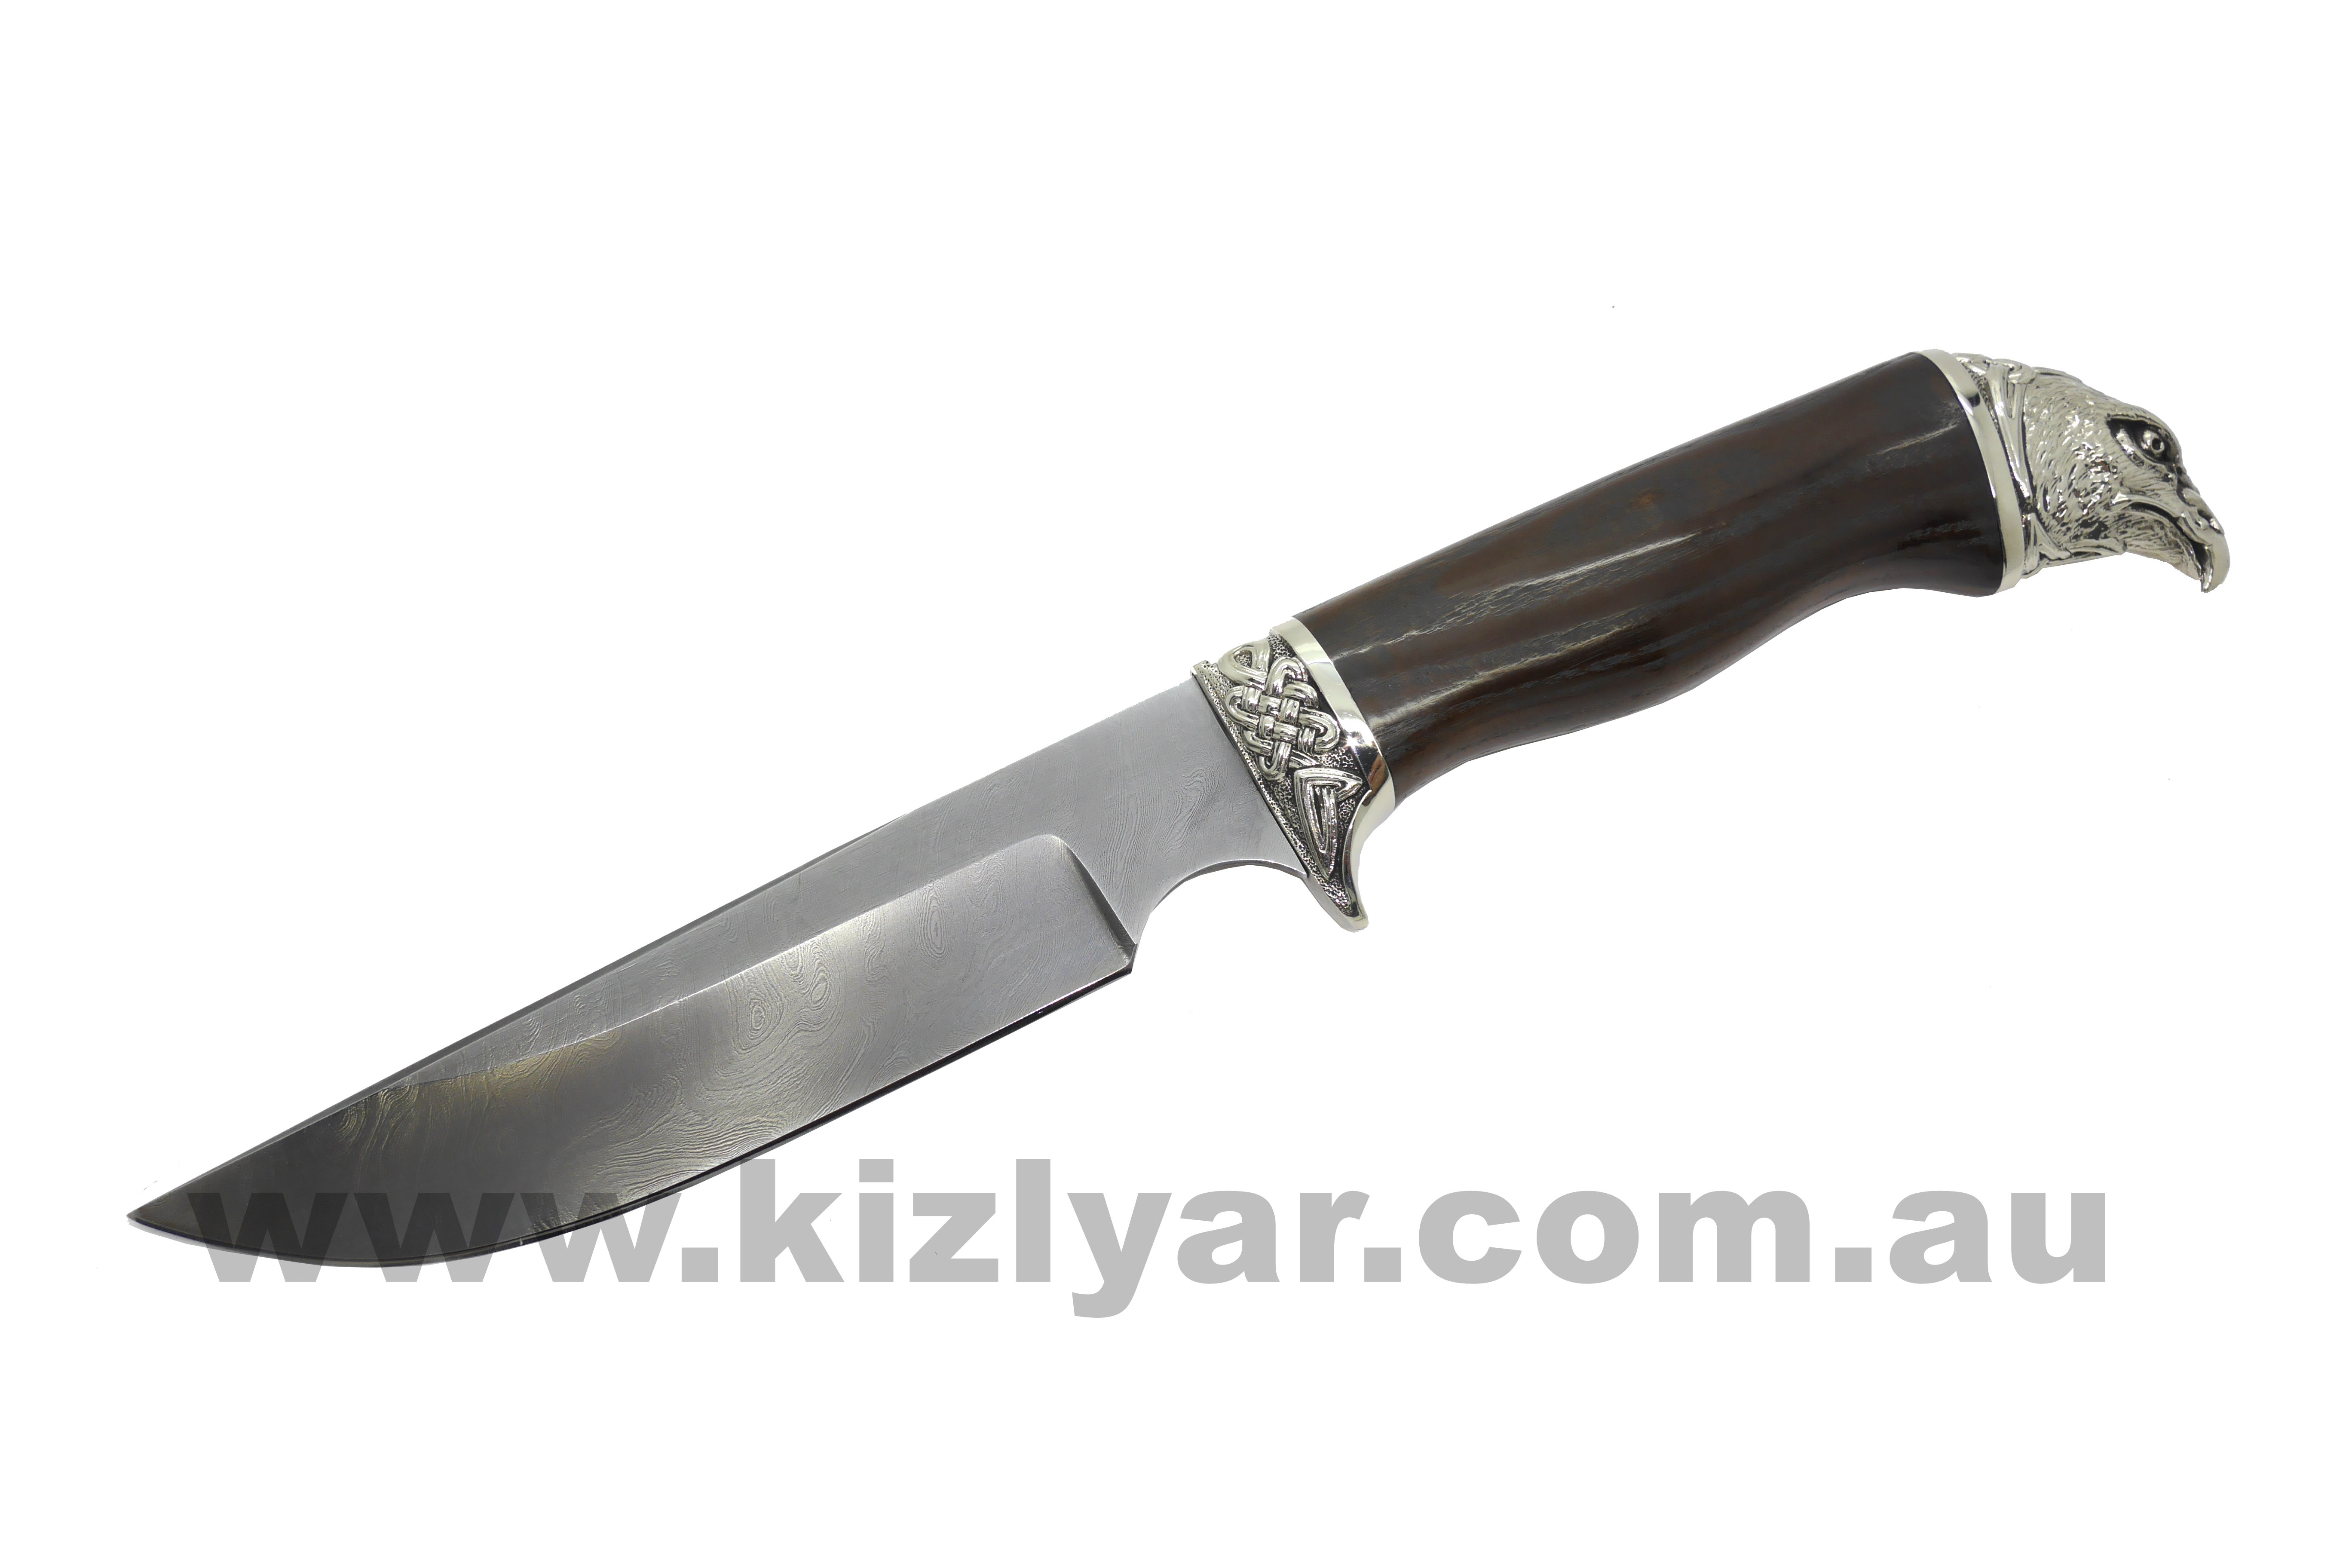 what are kitchen knives made of custom made knives kizlyar knives australia knives and 27616